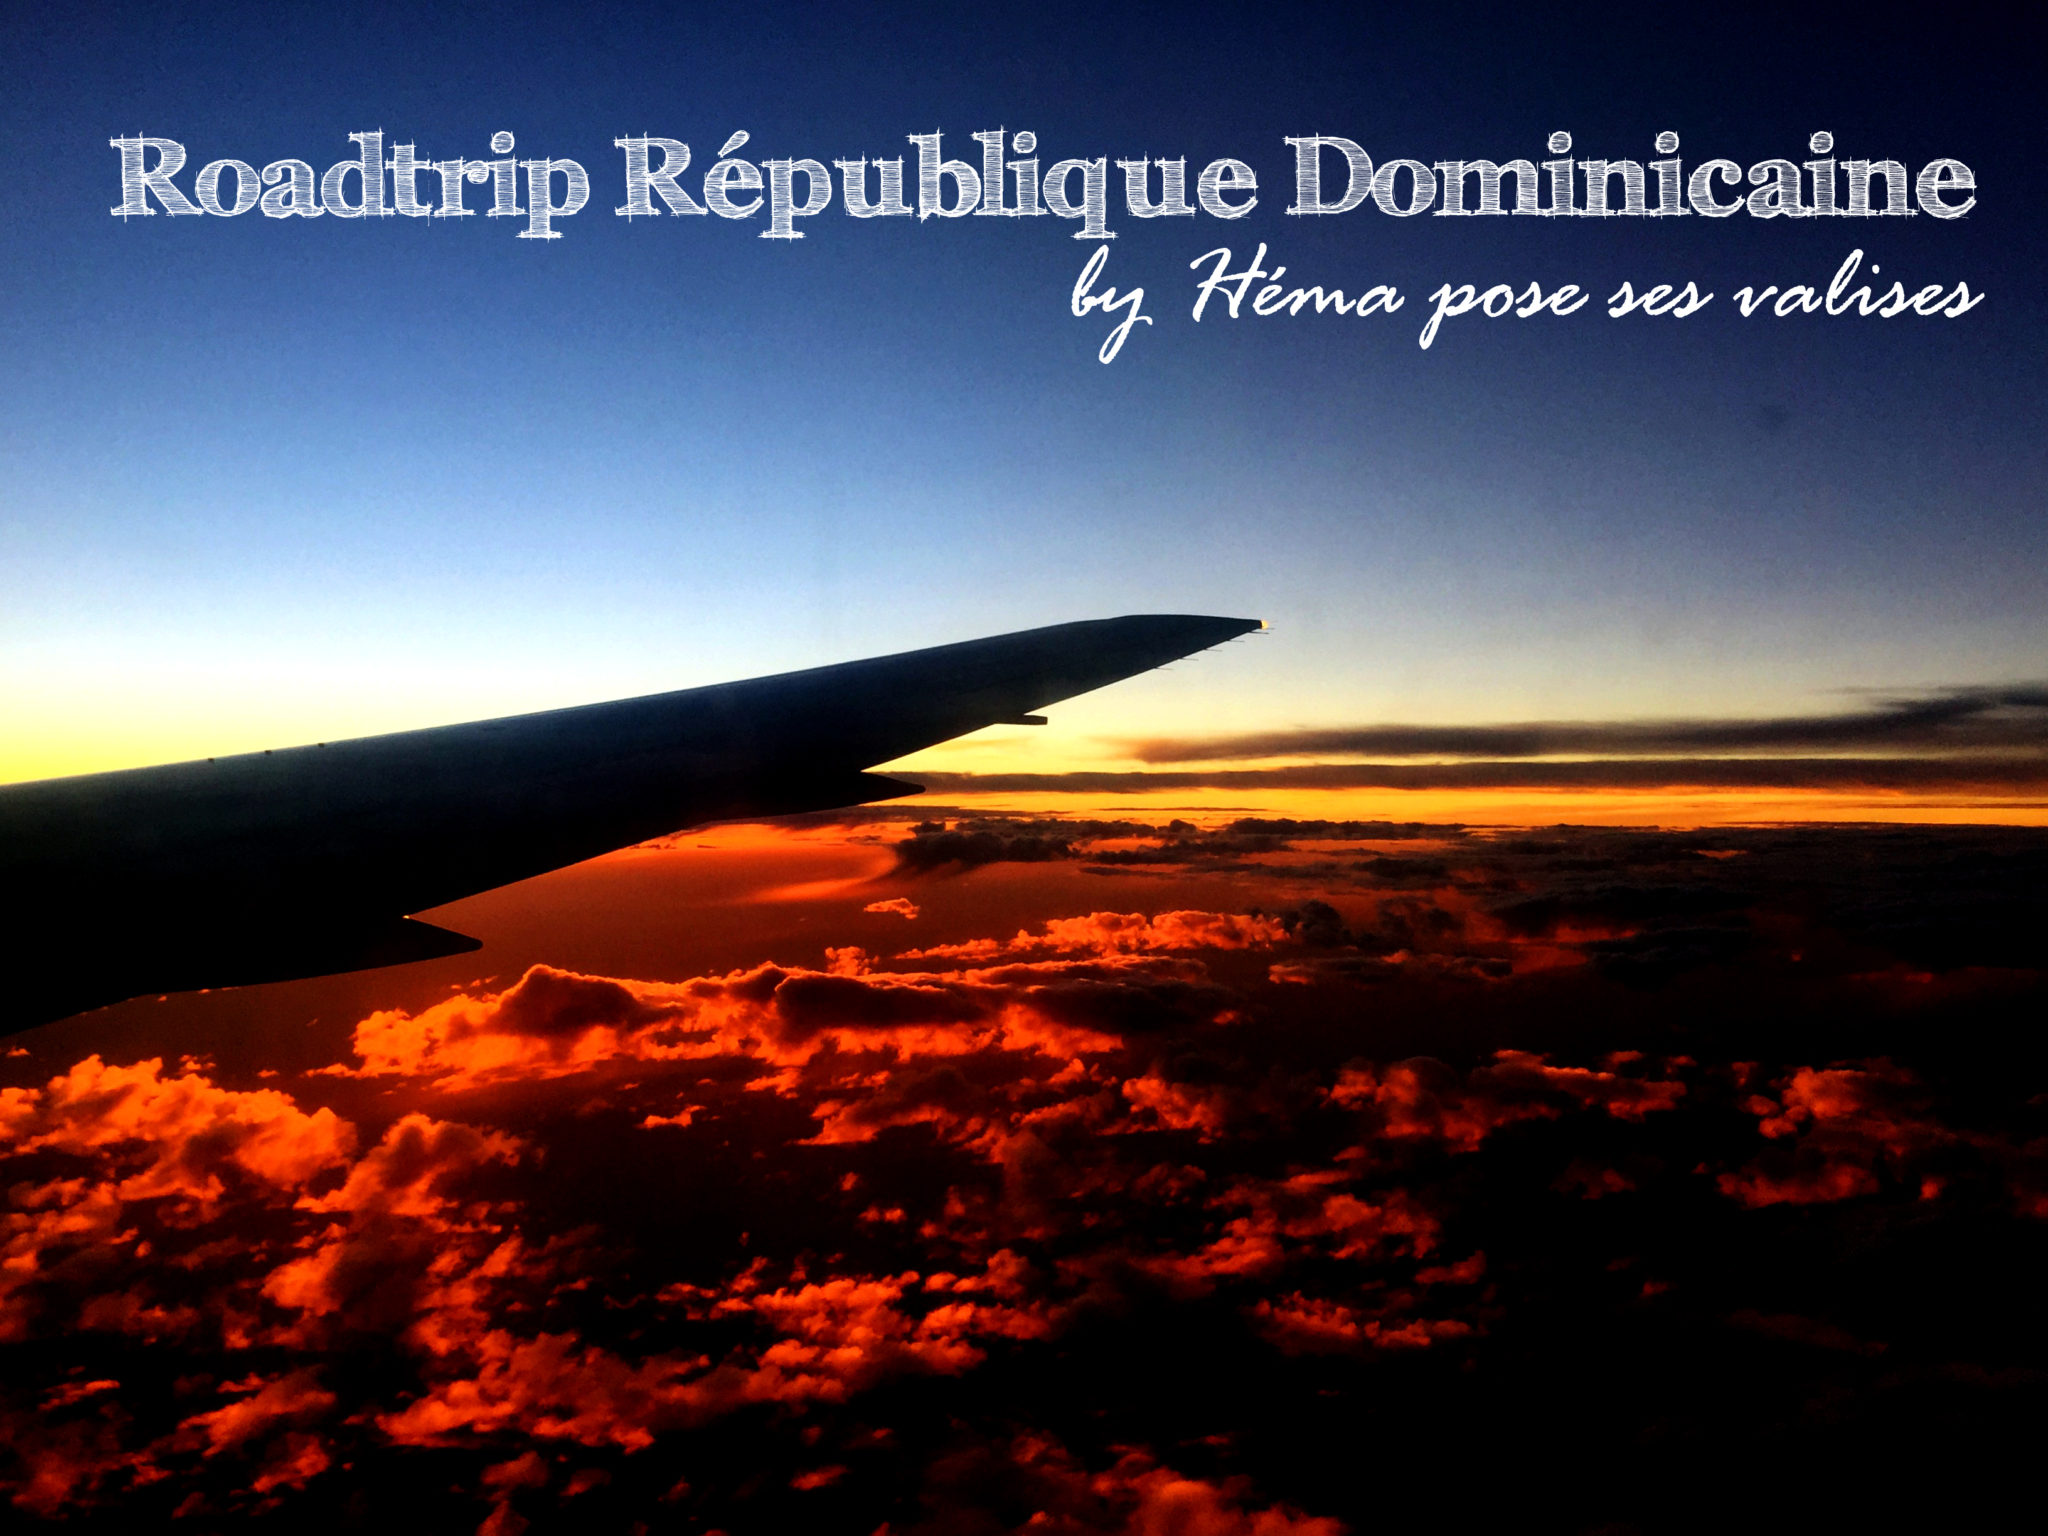 Hemaposesesvalises_roadtrip_Republique_dominicaine_coucher_de_soleil